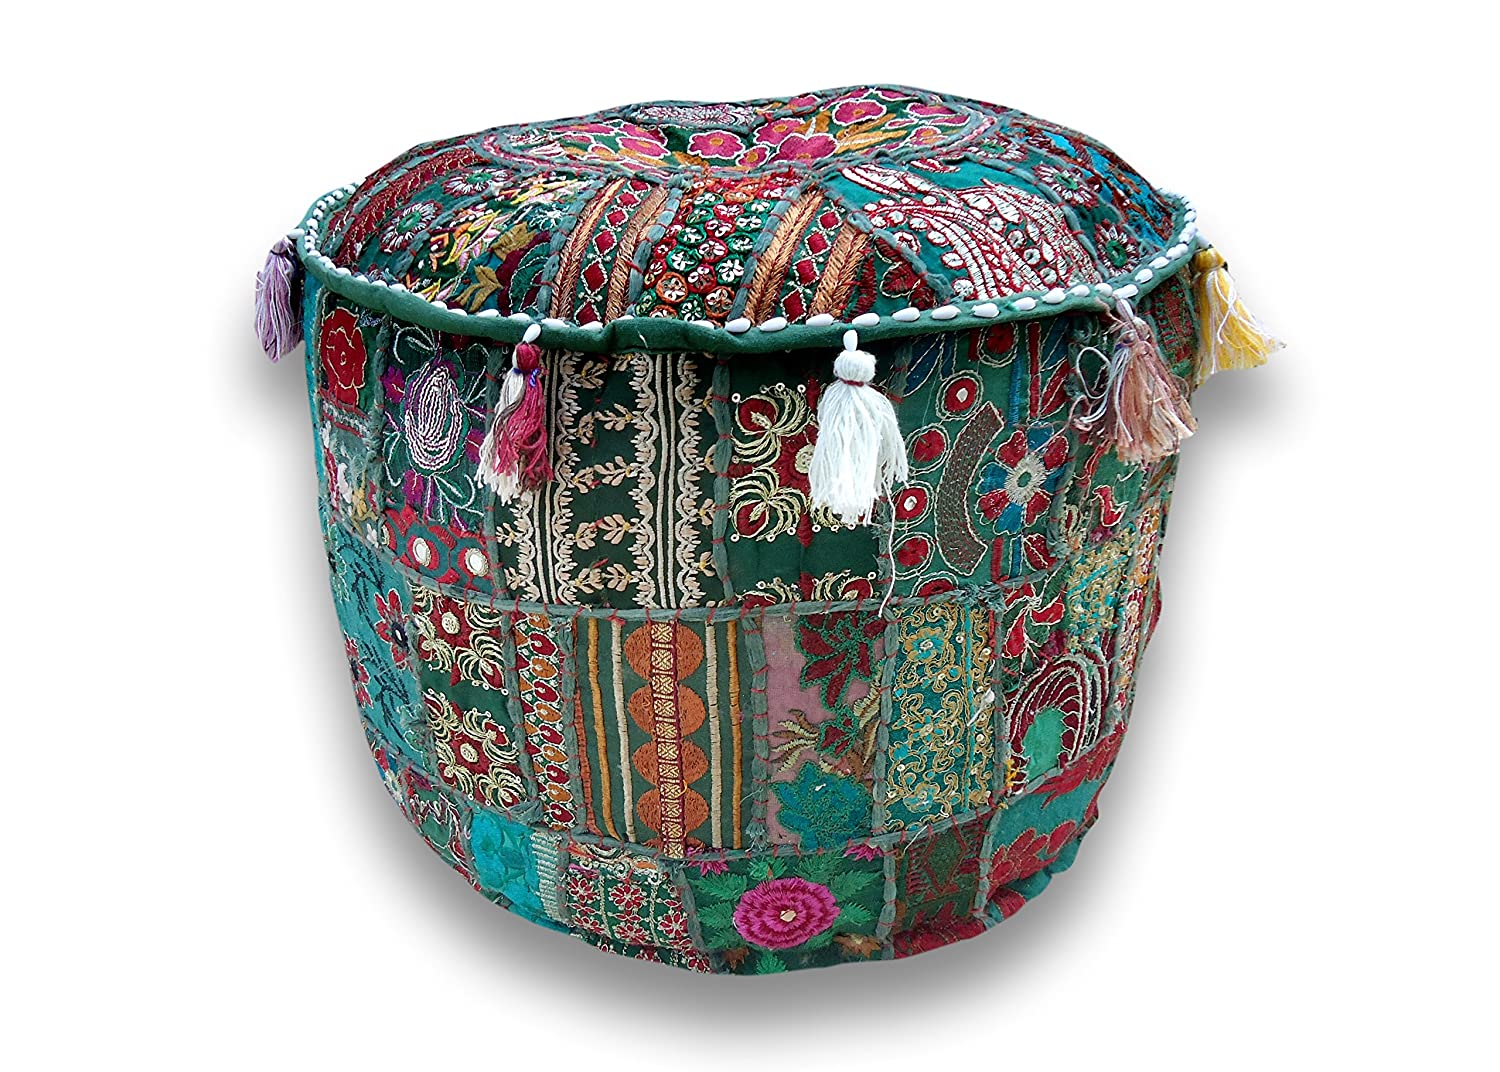 """Rajasthali"" Indian Traditional Home Decorative Multi Ottoman Handmade and Patchwork Foot Stool Floor Cushion, Size 14 X 18 X 18 Inches[Cover only; insert not included ]"